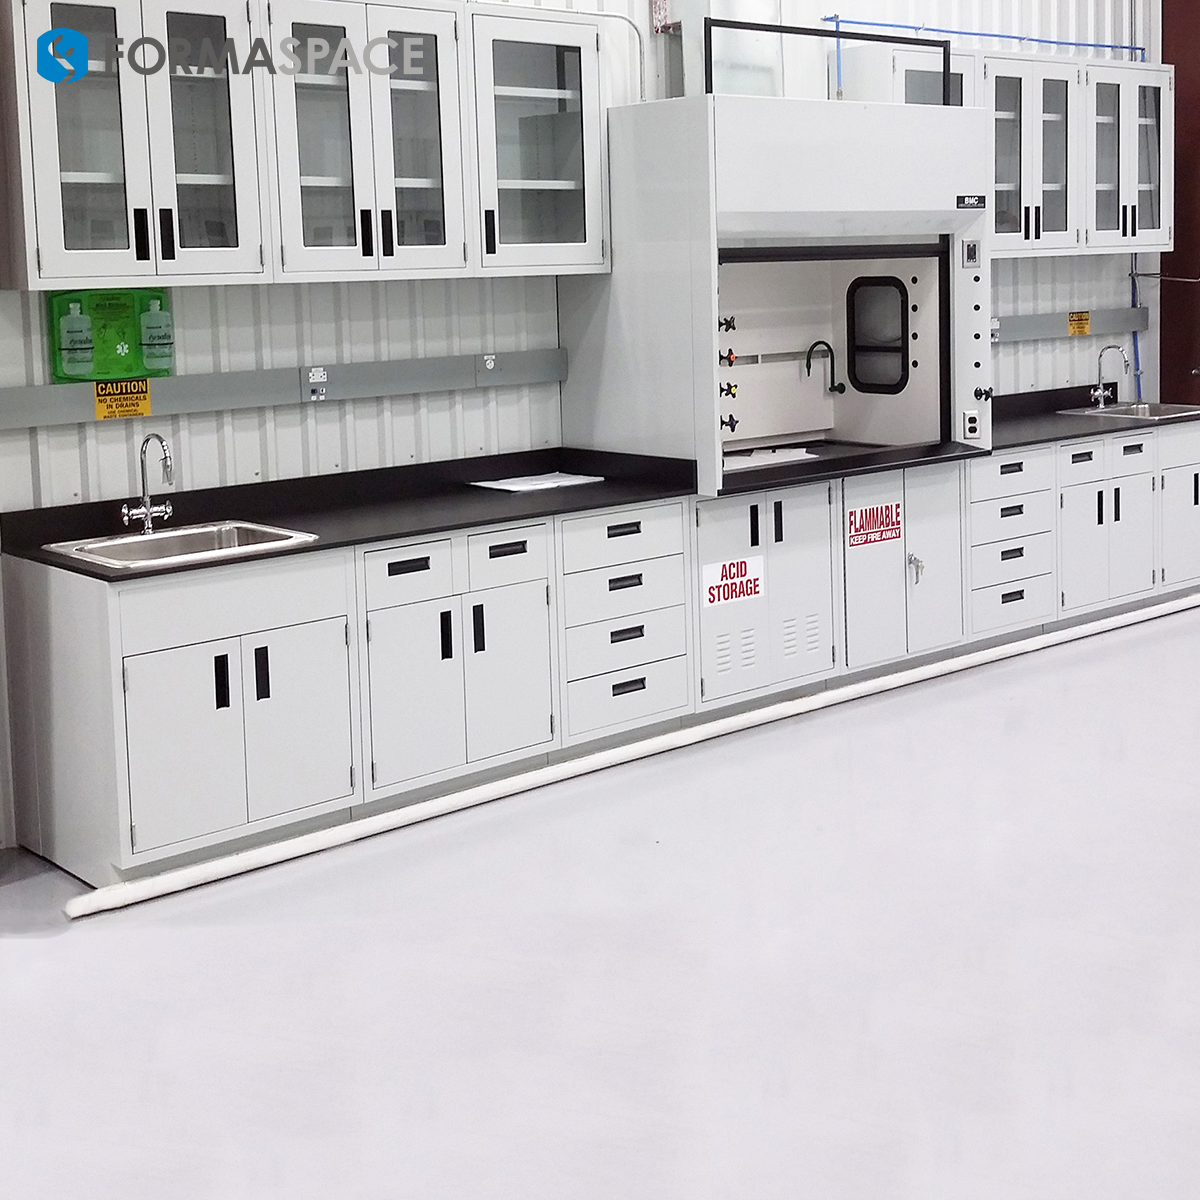 Oil & Gas Laboratory Casework with Ventilation System